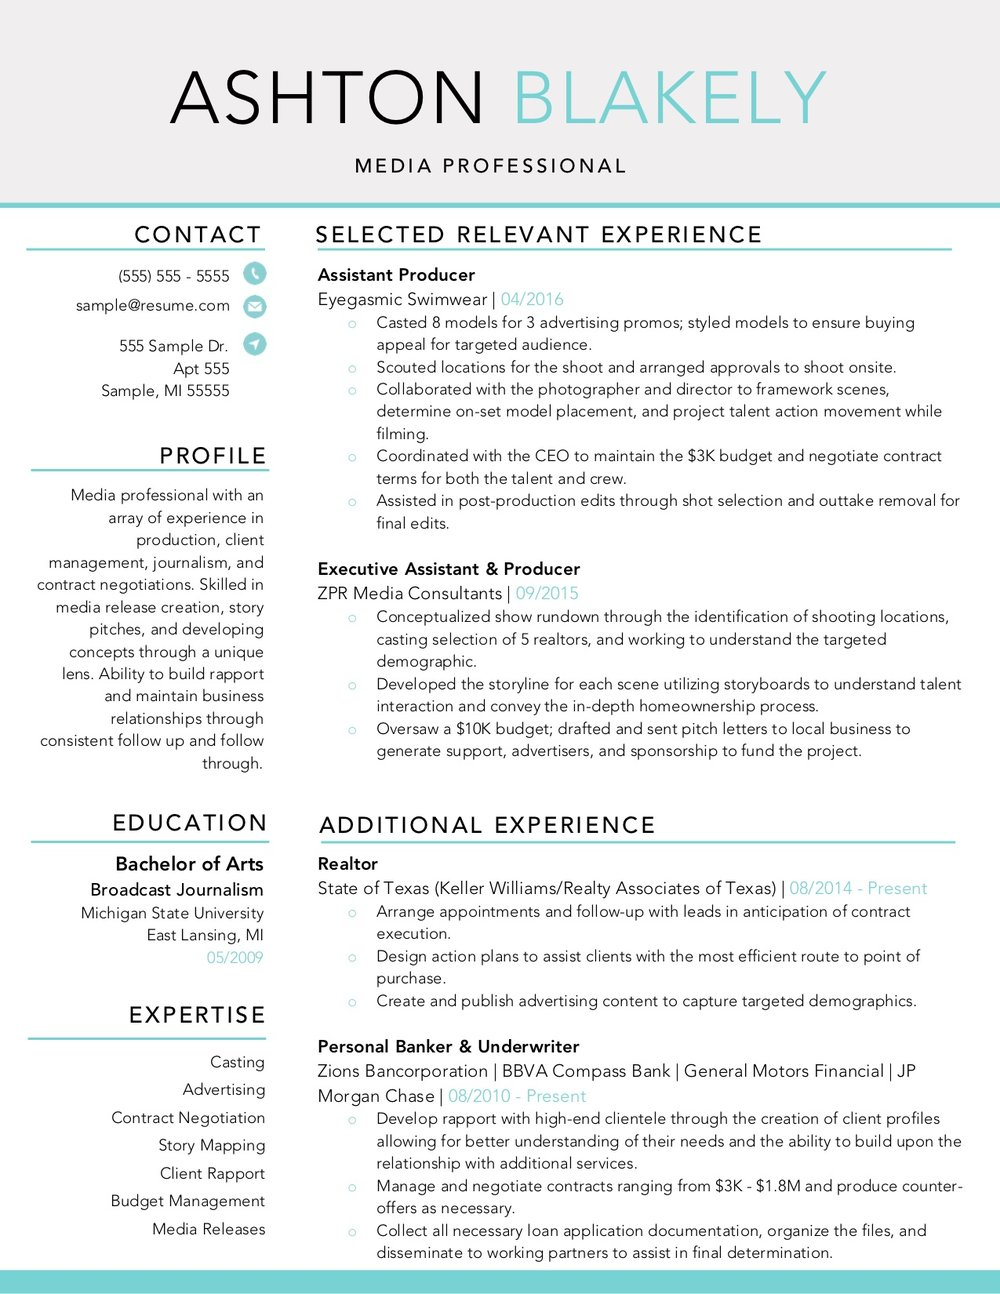 Client Resume #32. Click to Enlarge.